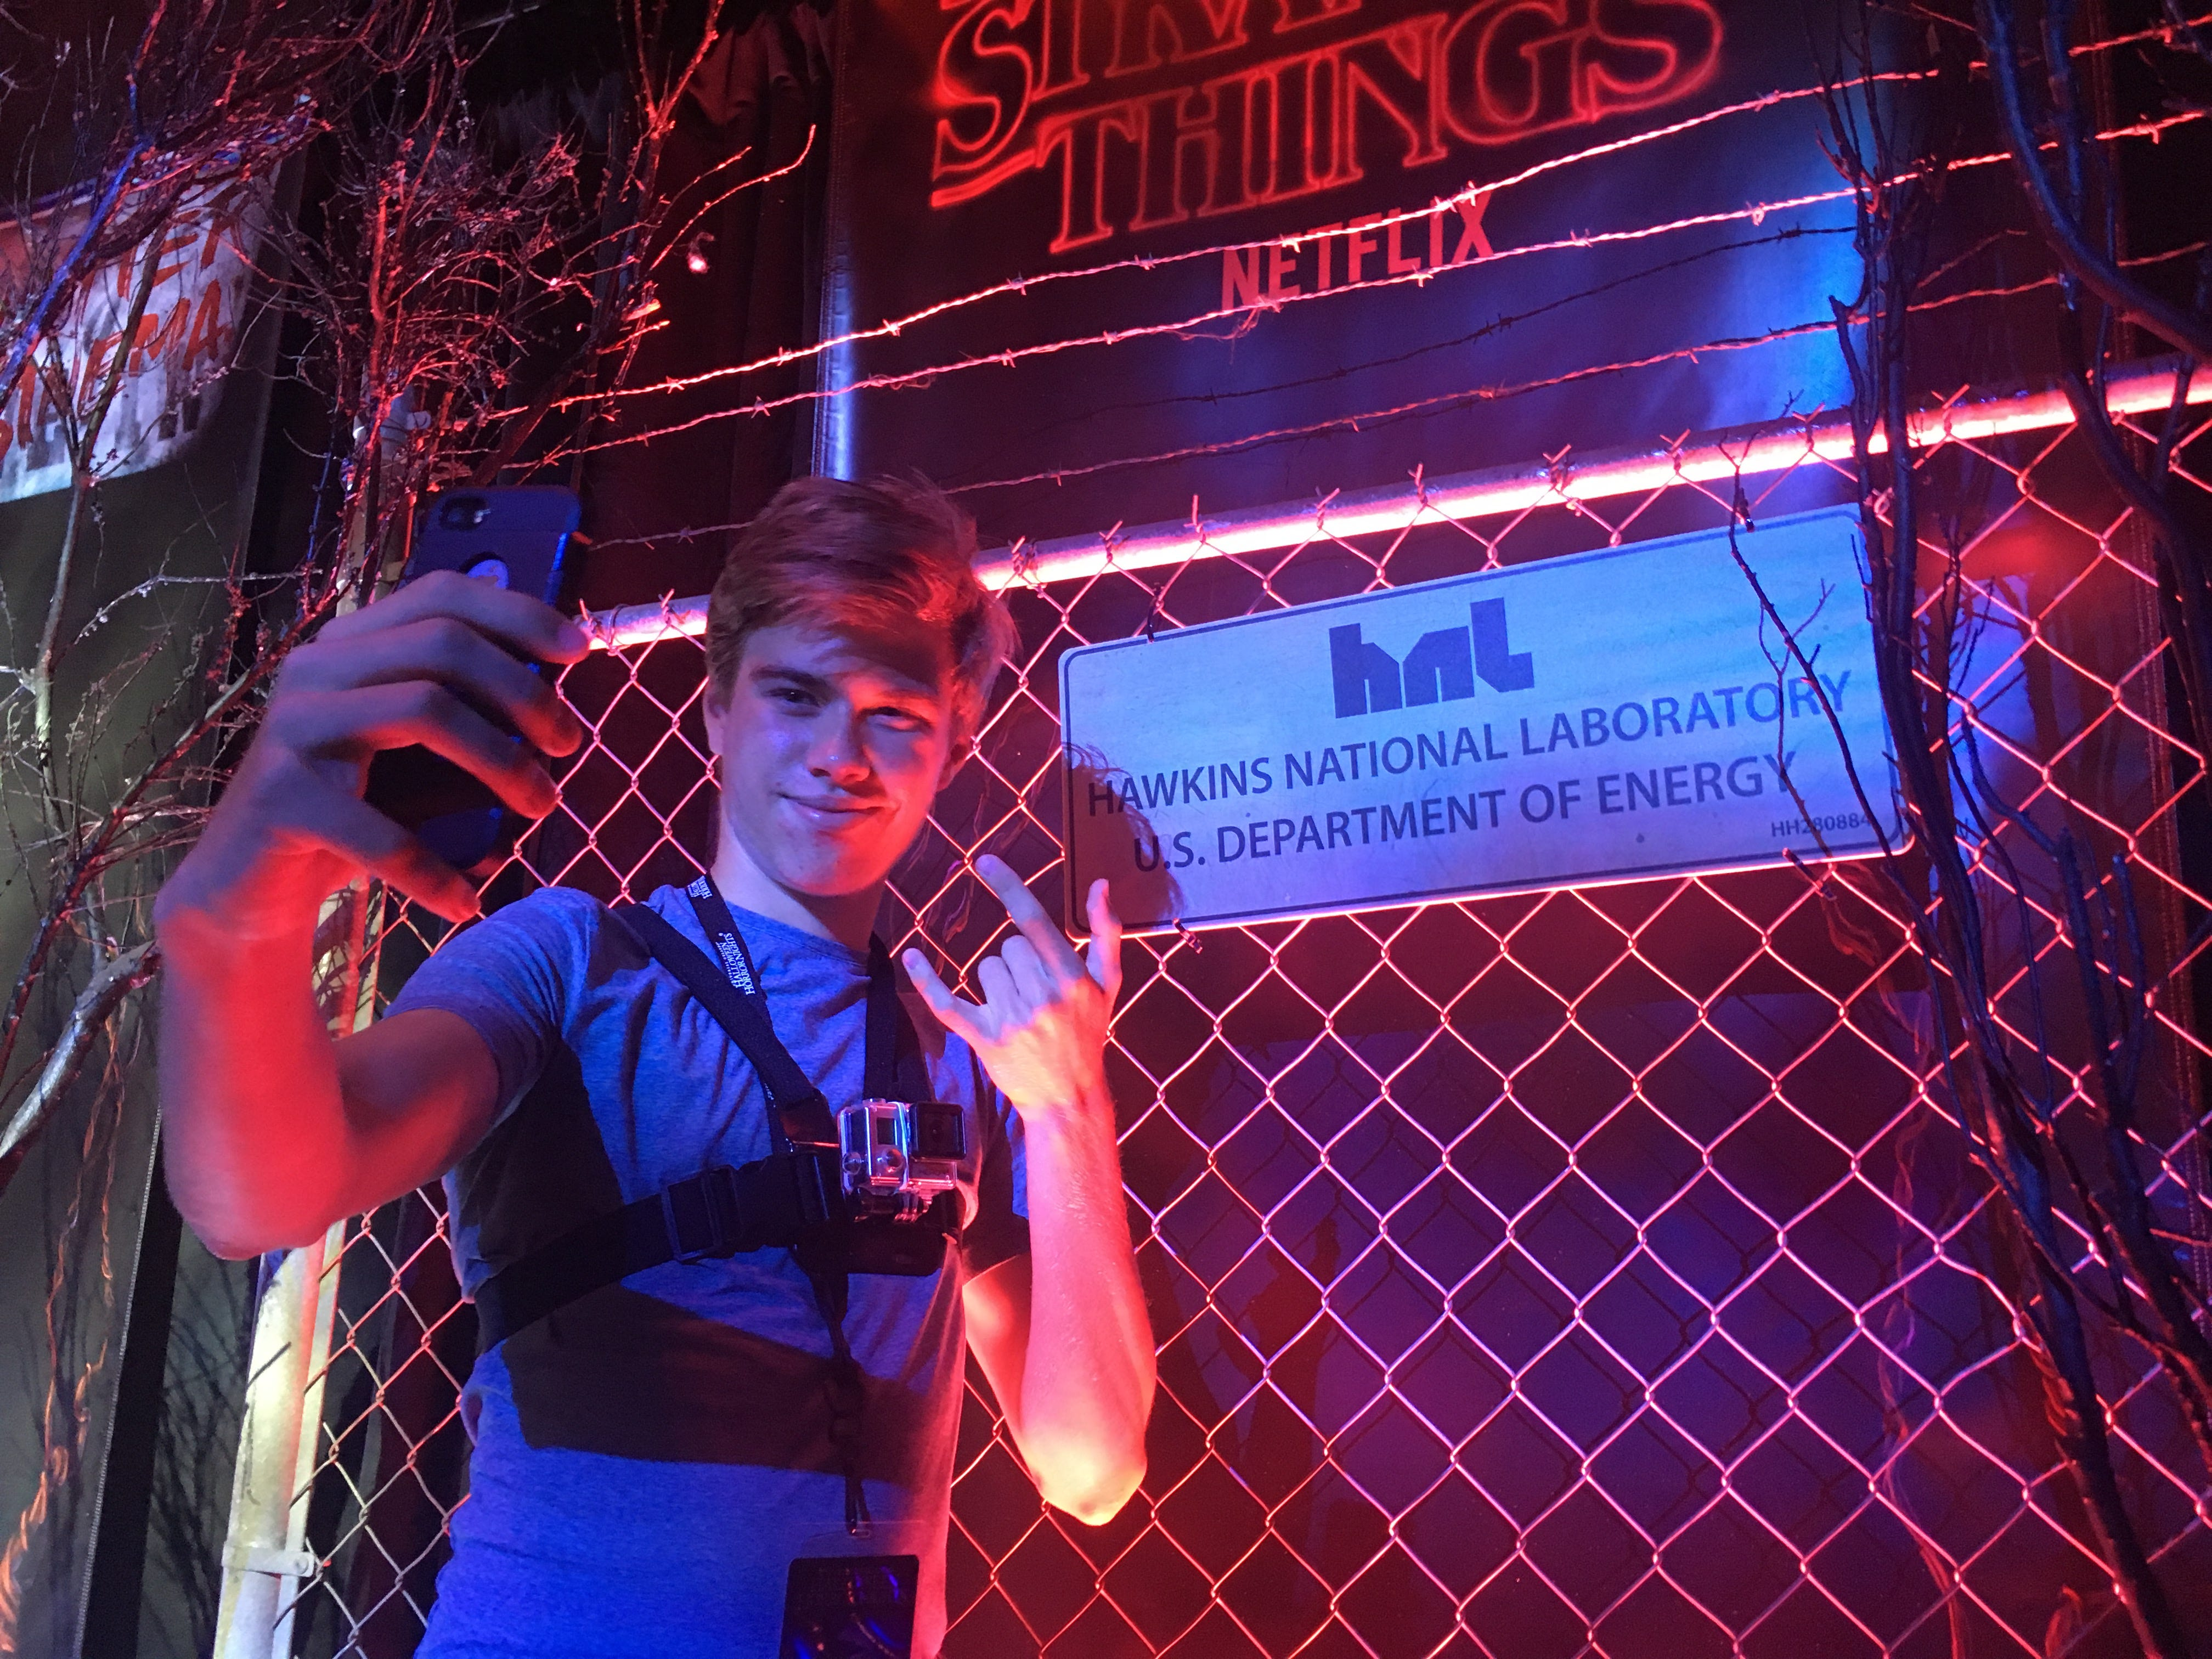 9e91a40a1f644 Halloween Horror Nights 2018 at Universal Orlando   Stranger Things  and   Killer Klowns